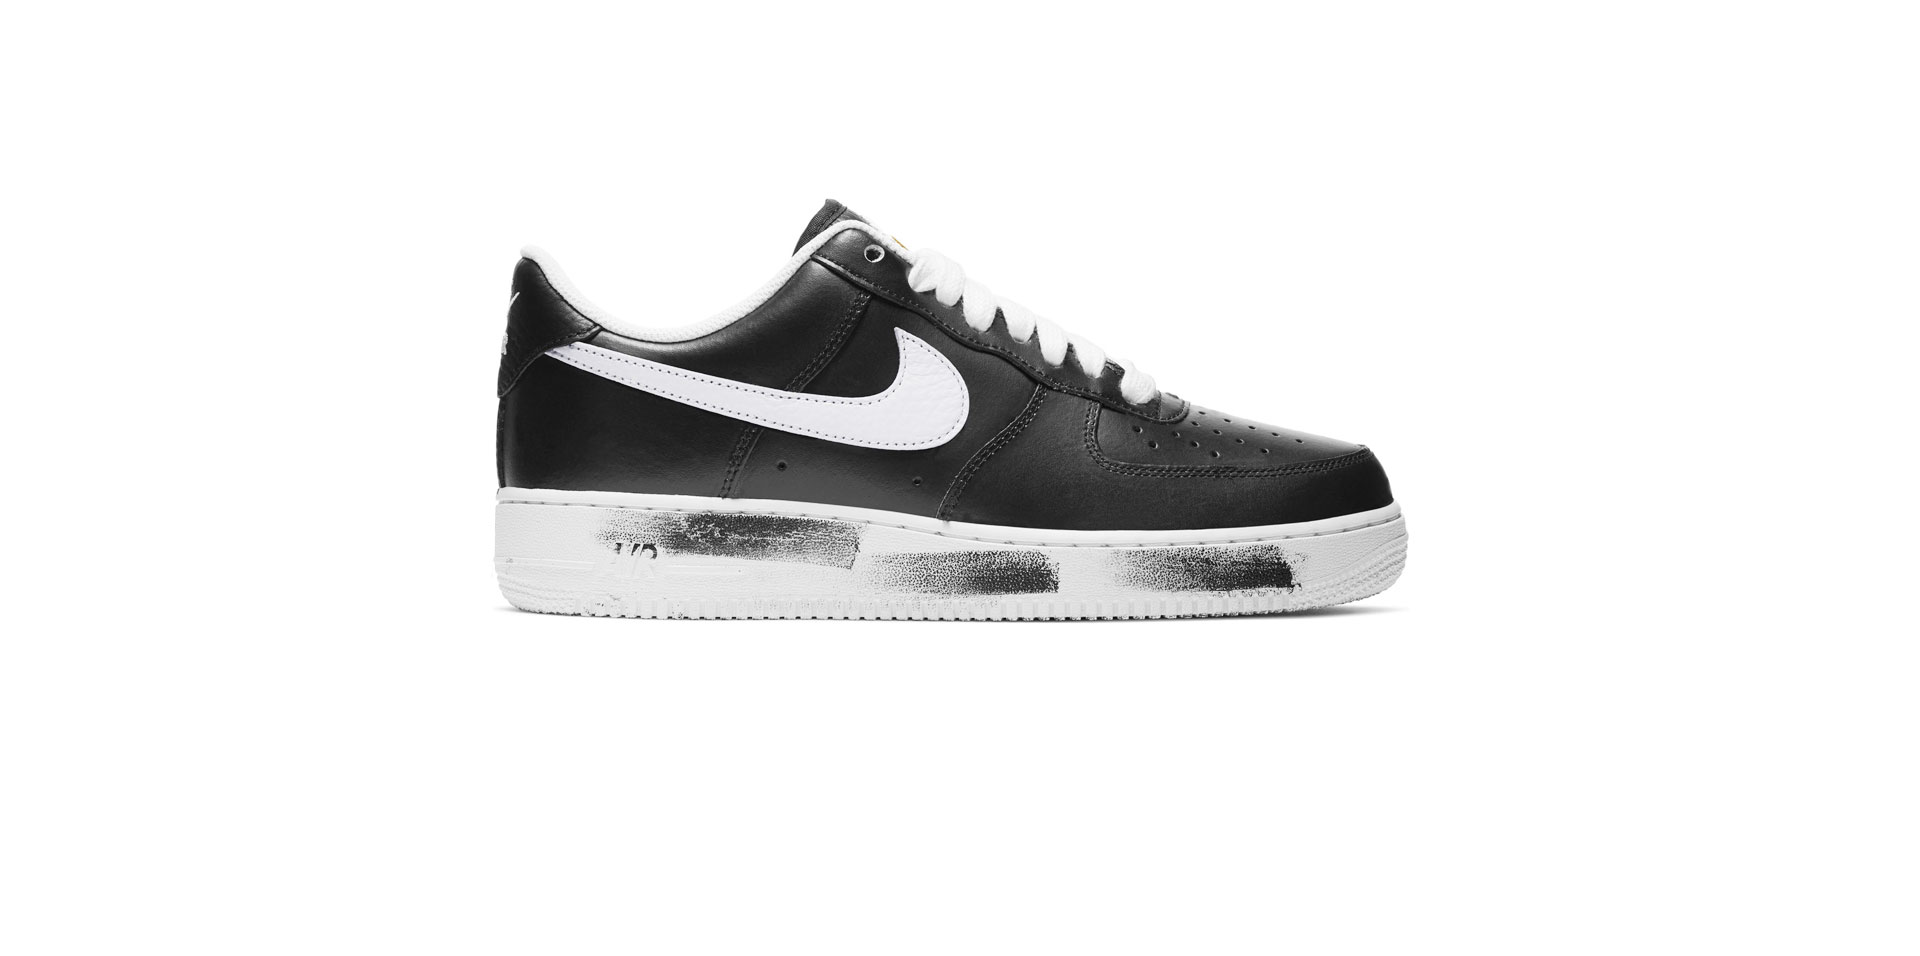 NIKE x G-DRAGON AIR FORCE 1 '07 PARA-NOISE - BLACK/WHITE